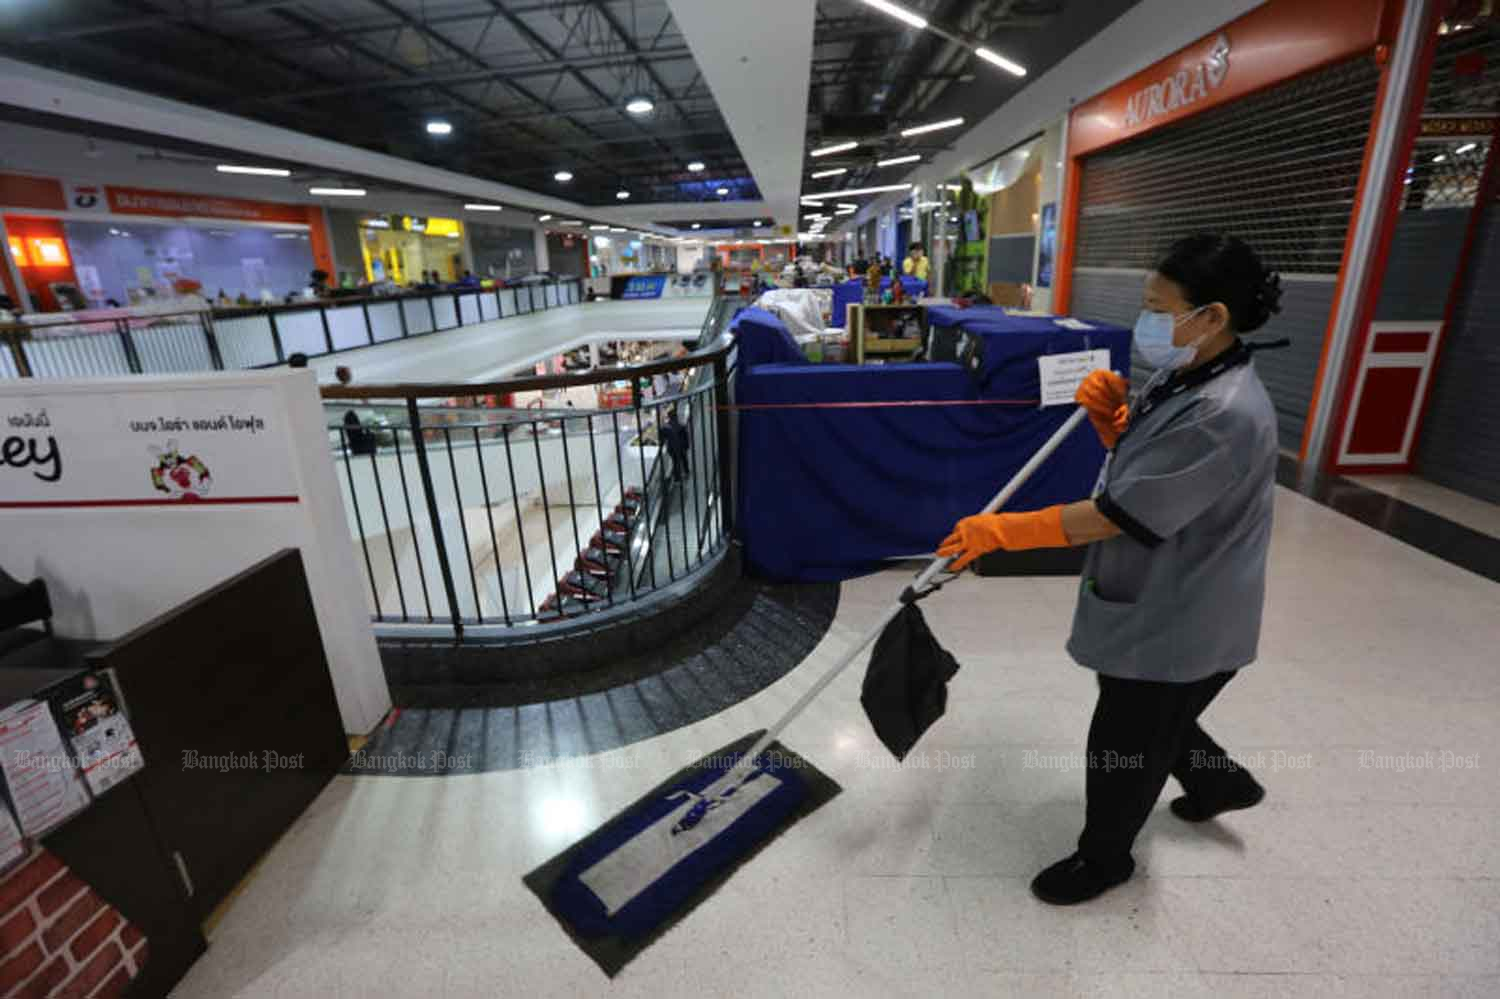 A cleaner works at a shopping centre in Samut Prakan province on Monday. All shops in the mall except for the grocery section were closed to curb Covid-19. (Photo: Wichan Charoenkiatpakul)